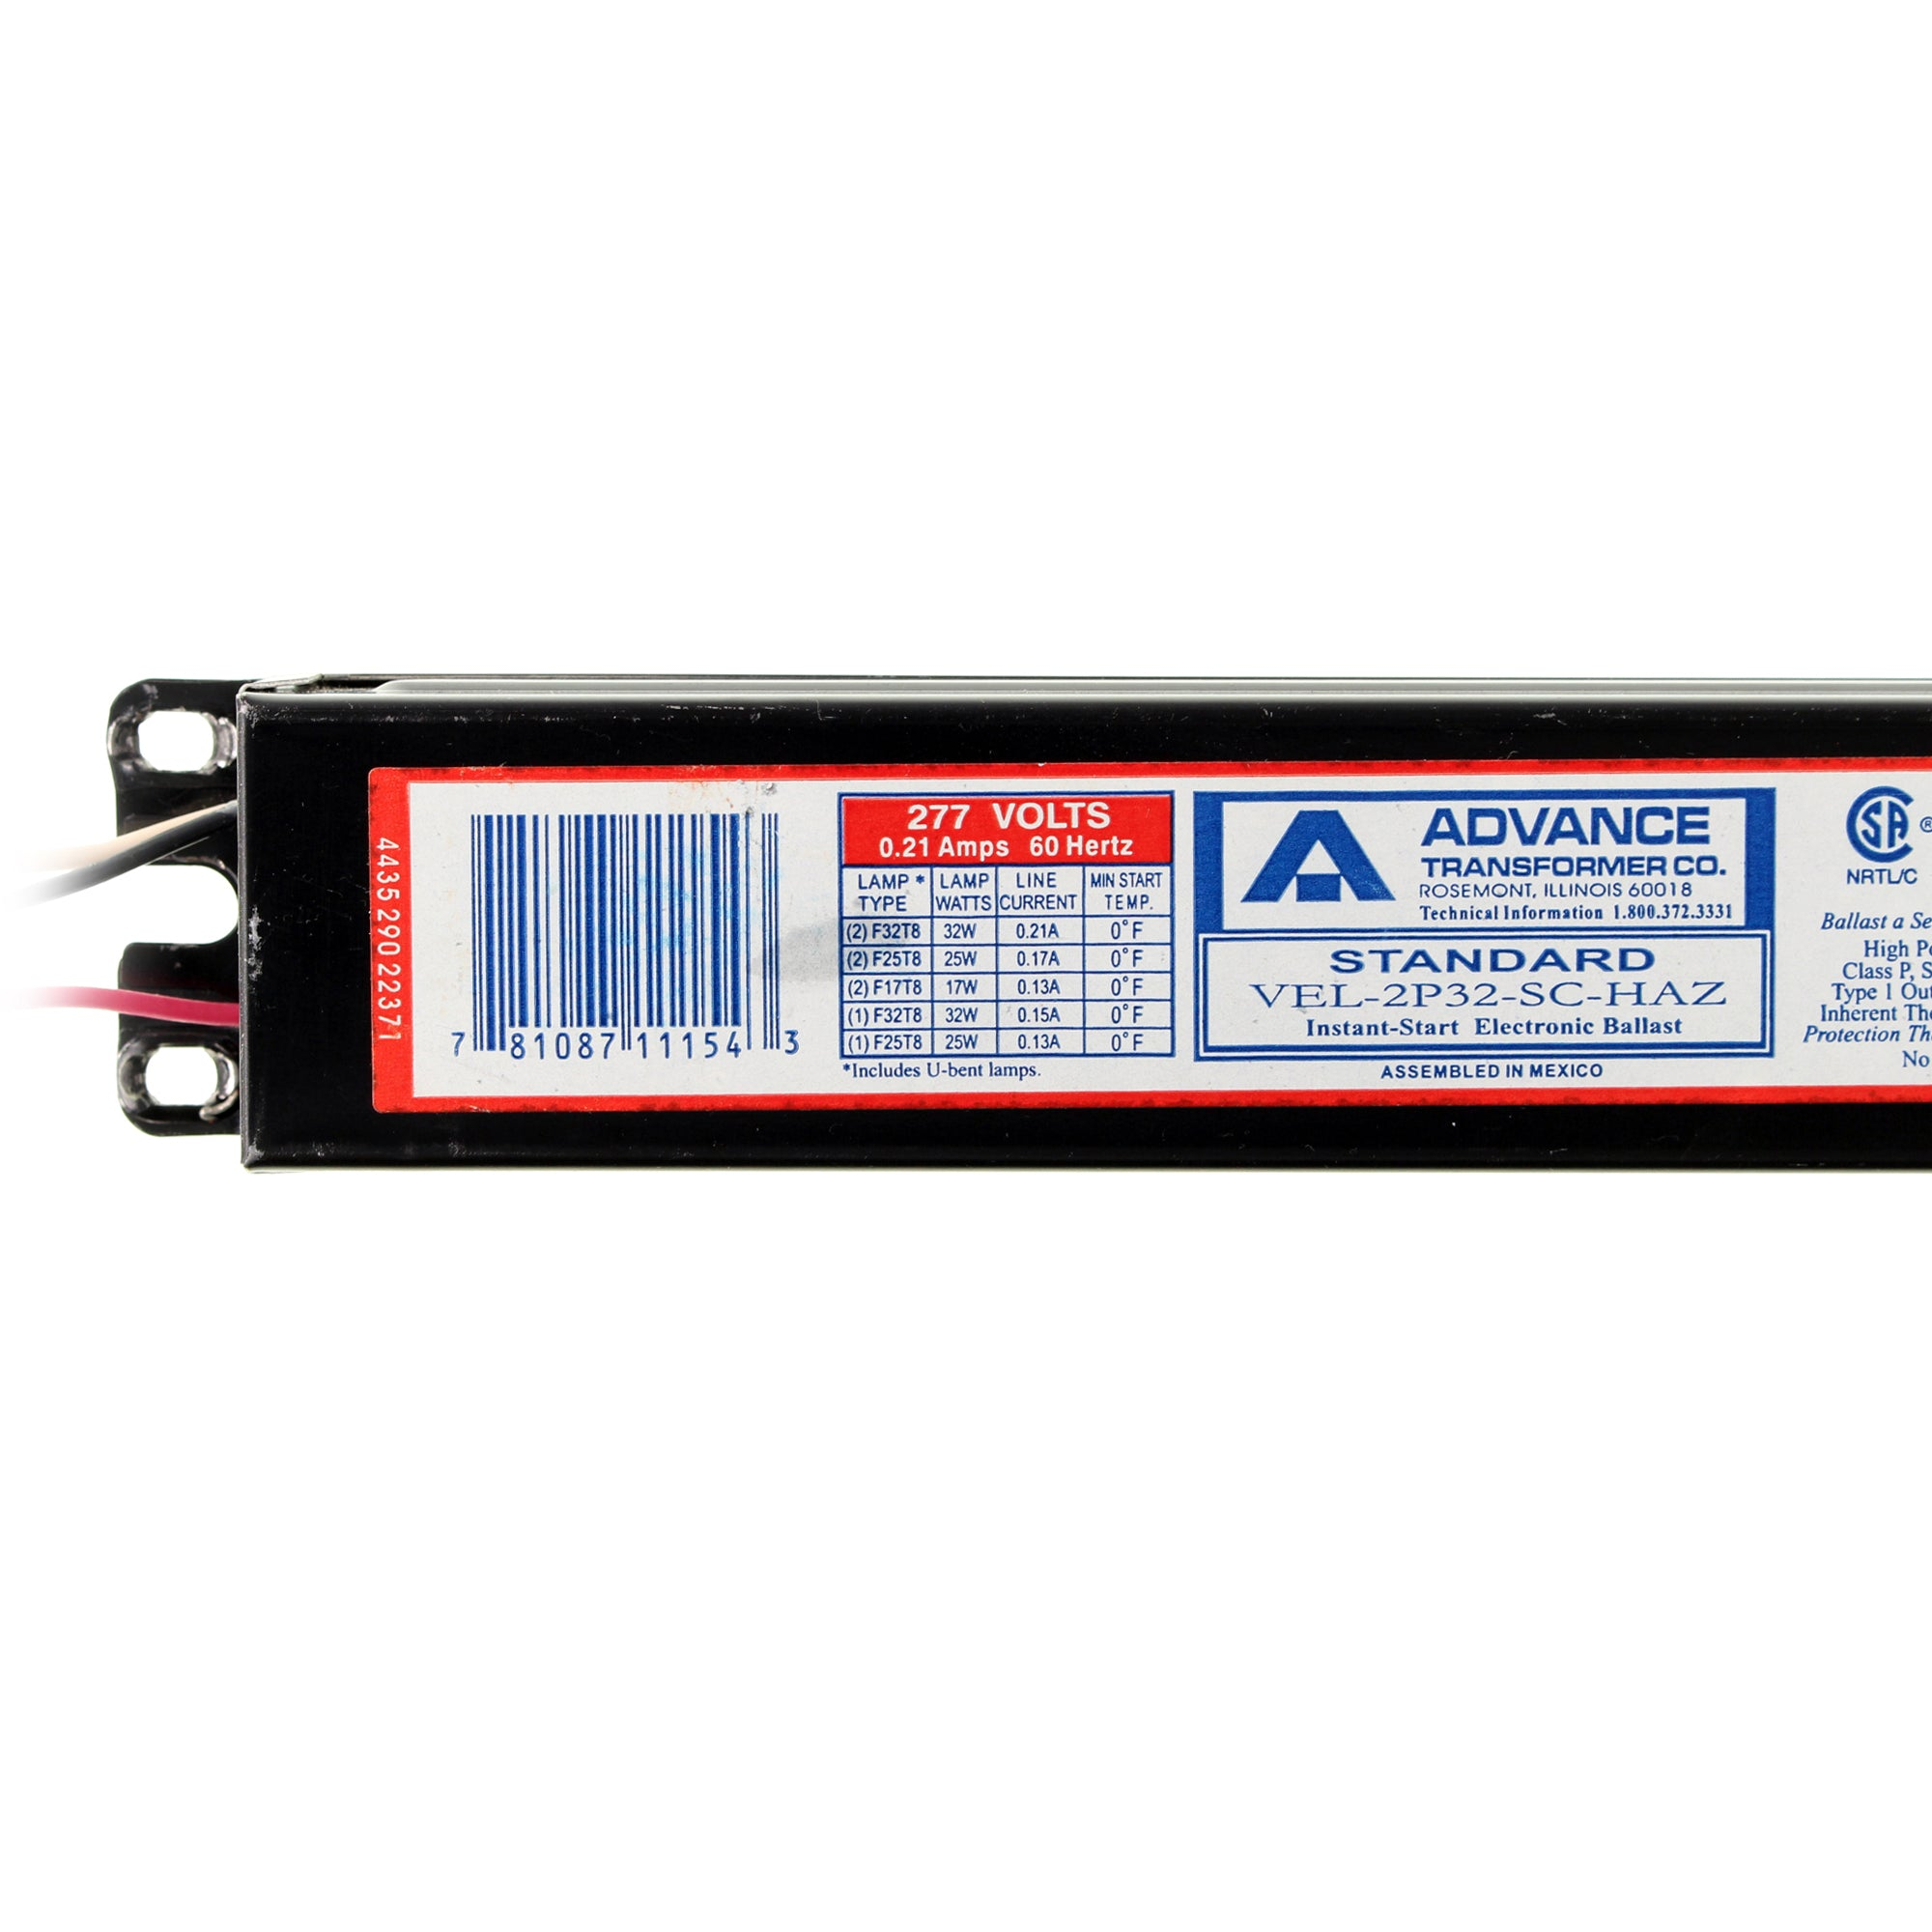 Advance REL-2P32-SC 120V Instant Start Electronic Ballast New